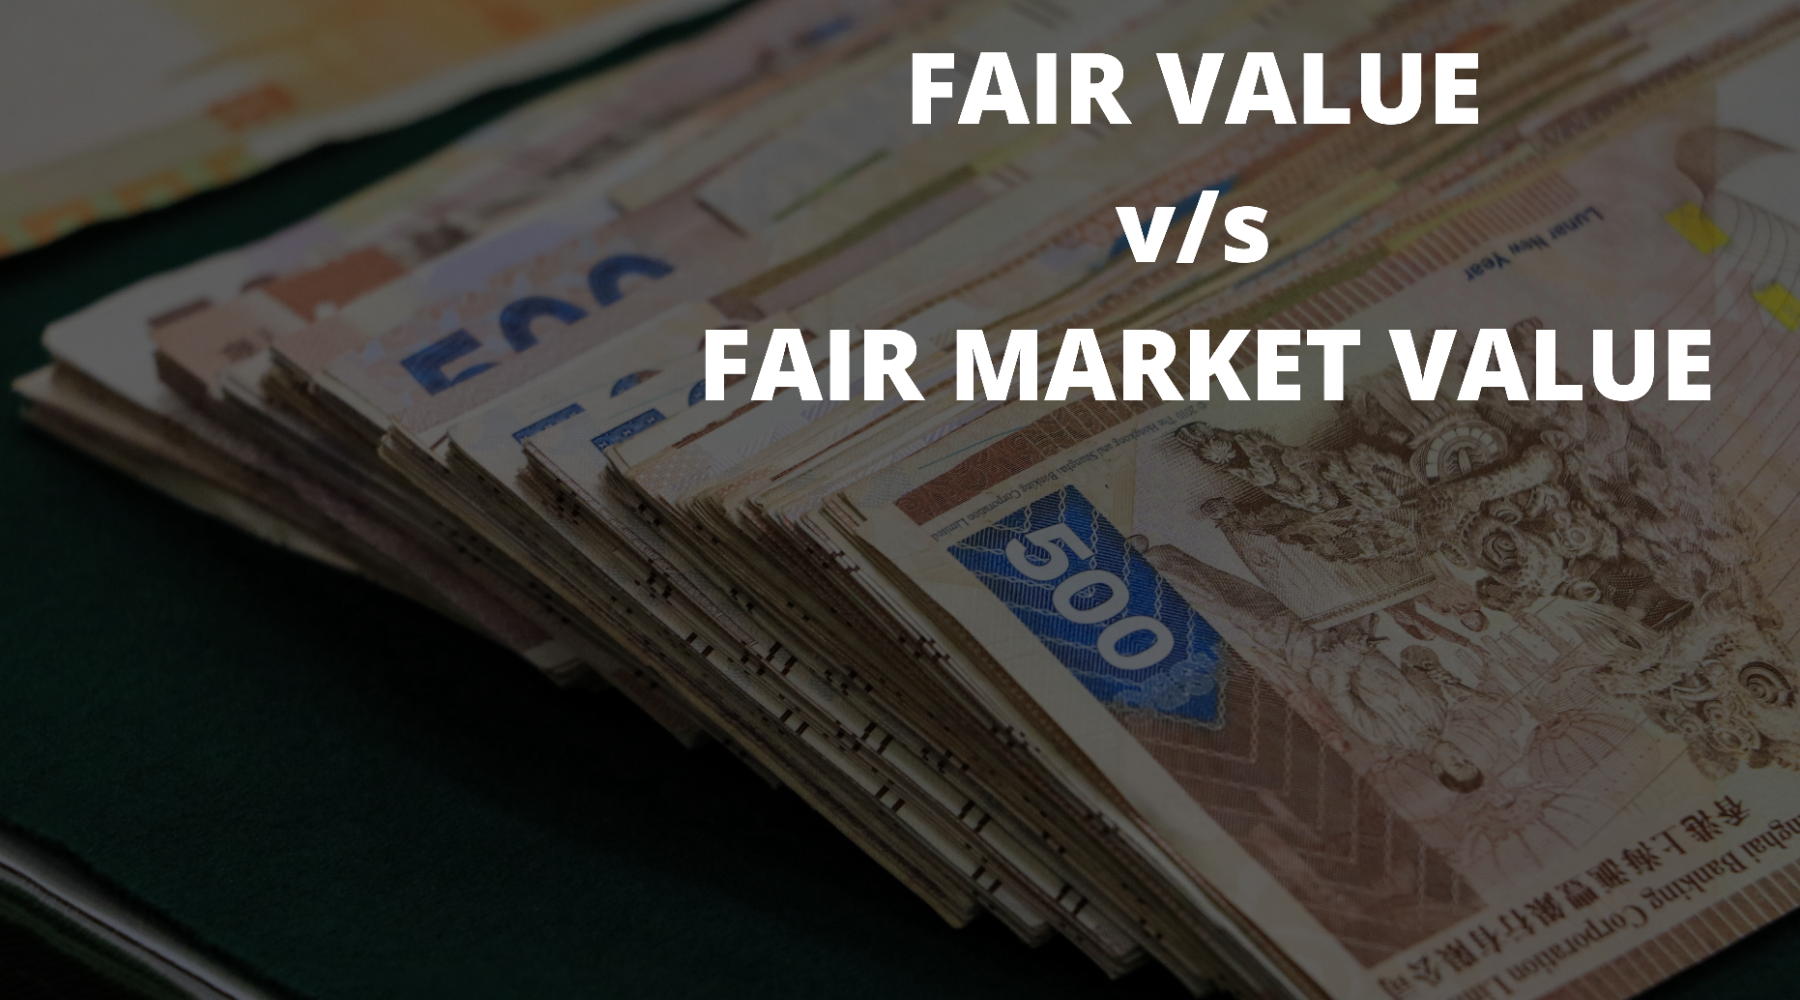 A Simple Guide to Differentiate Fair Value and Fair Market Value